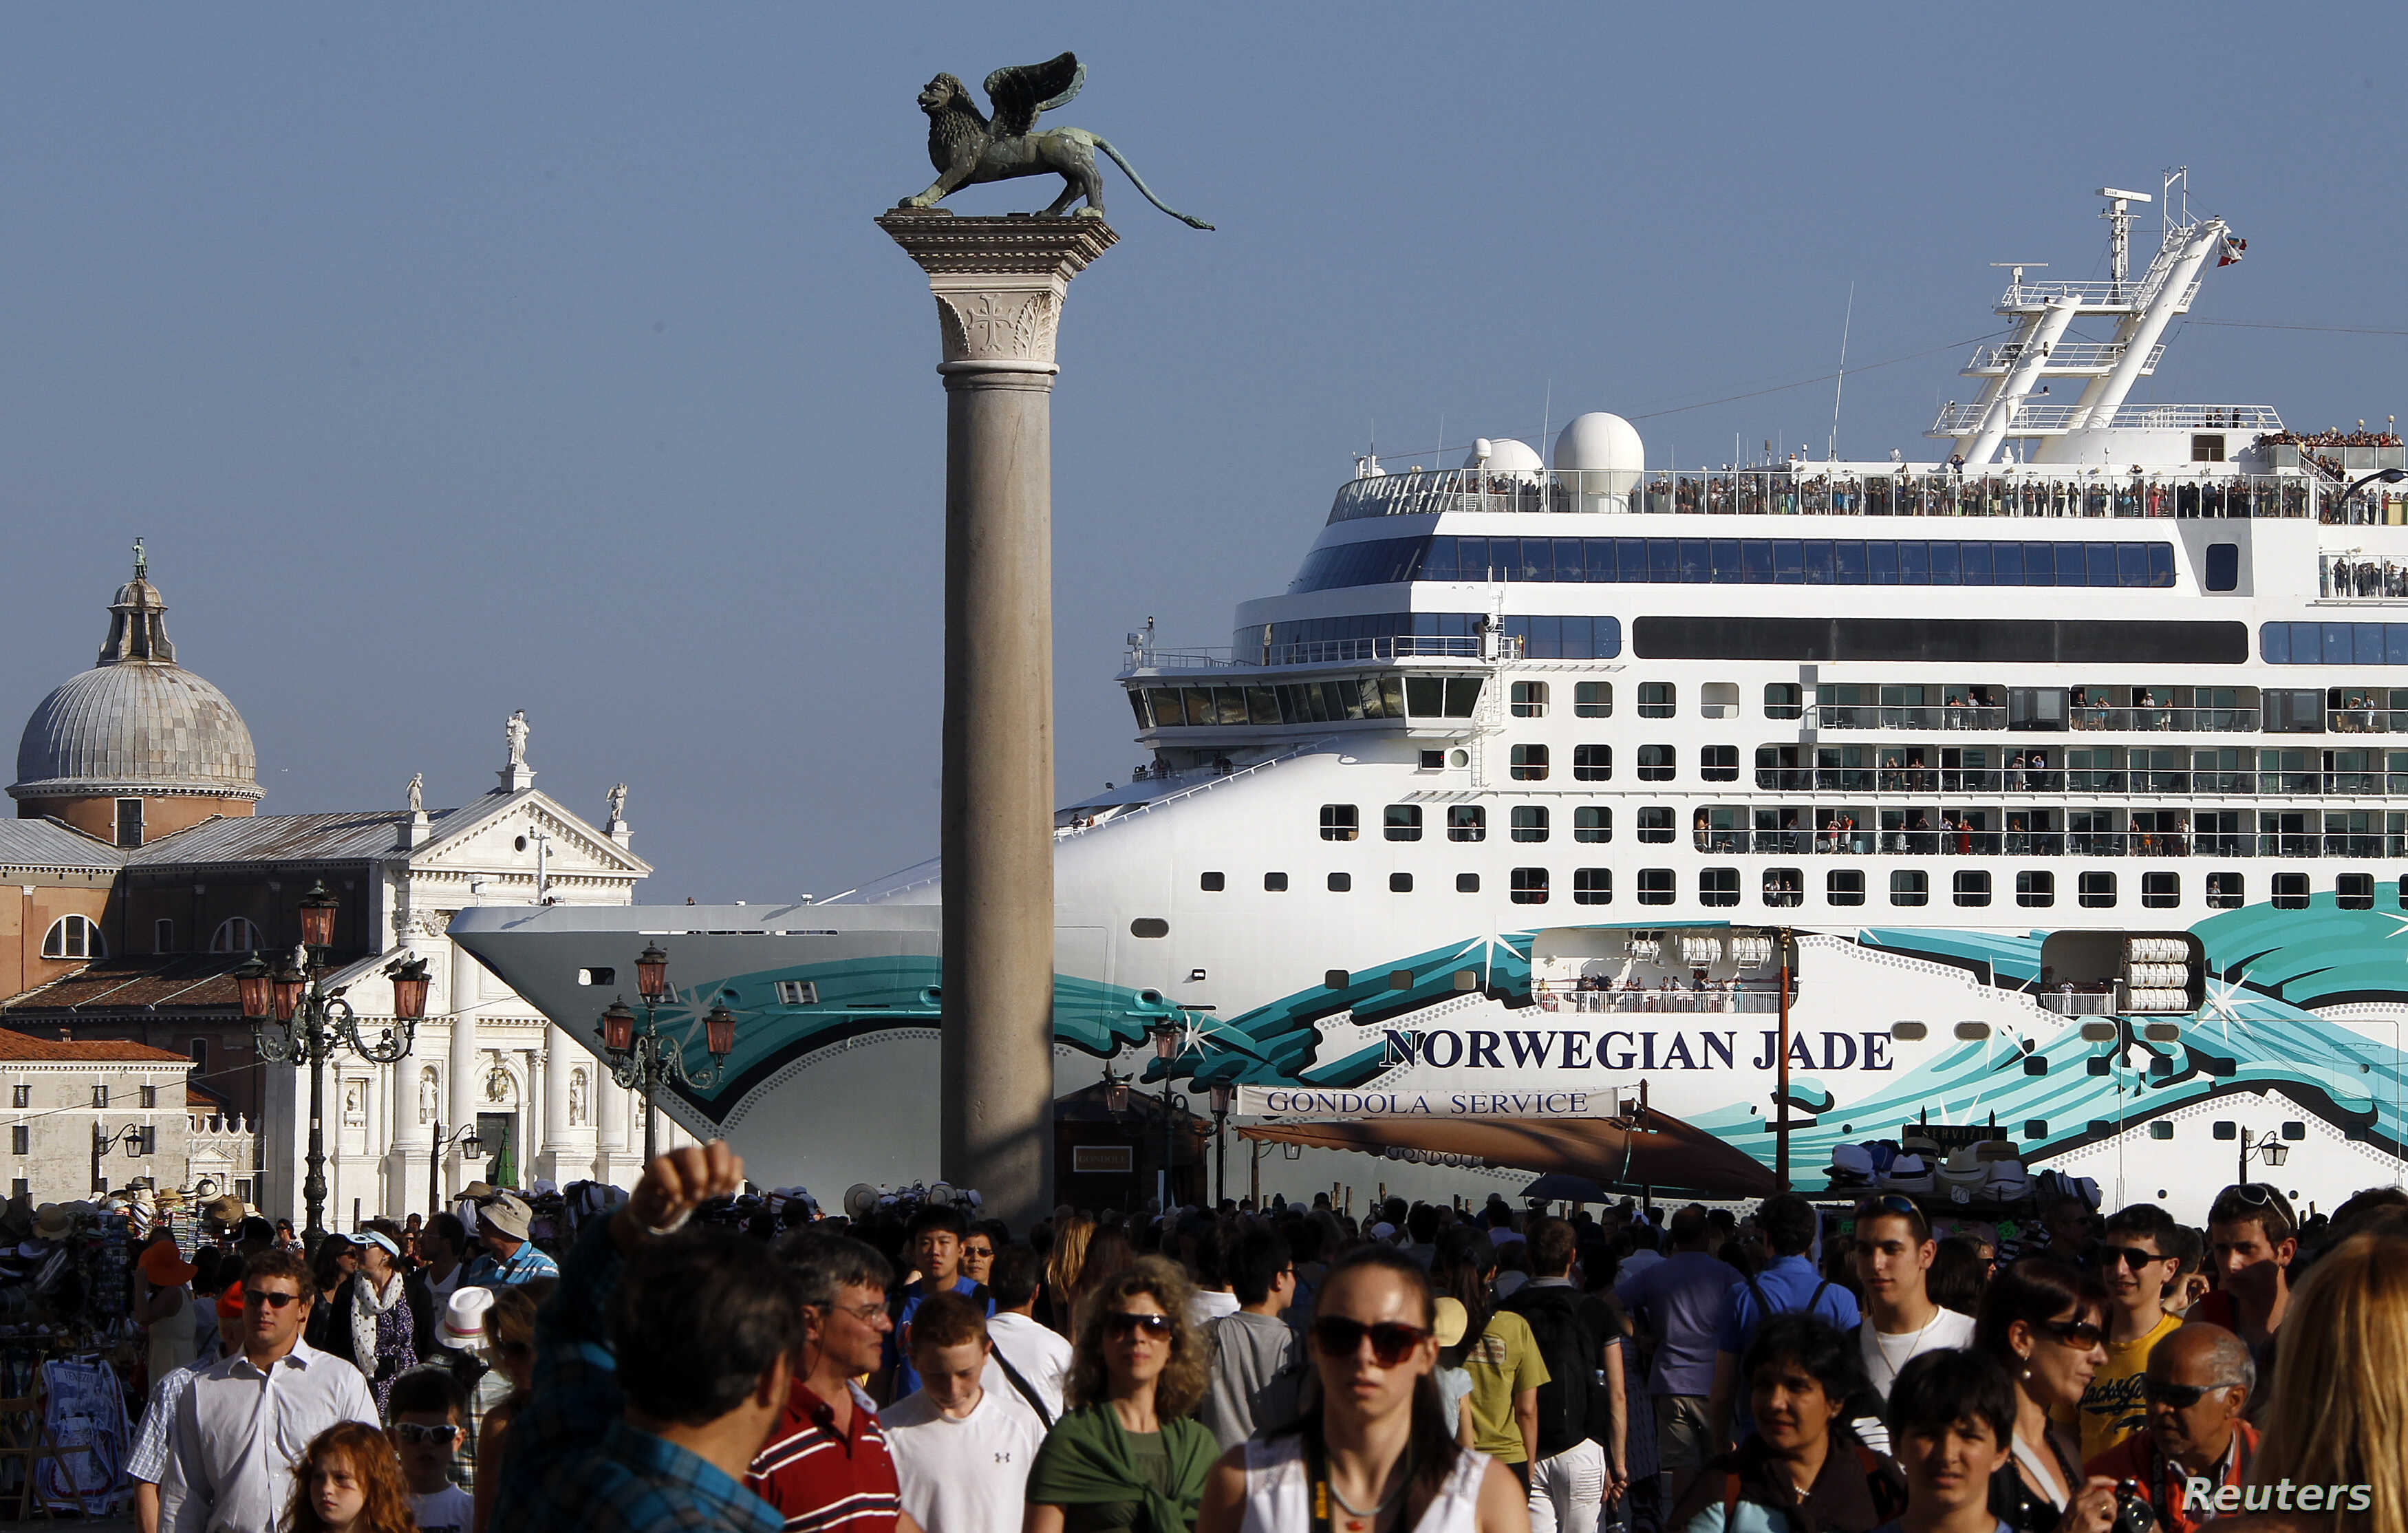 FILE - The Norwegian Jade cruise ship is seen from St. Mark square in Venice lagoon, June 16, 2012.